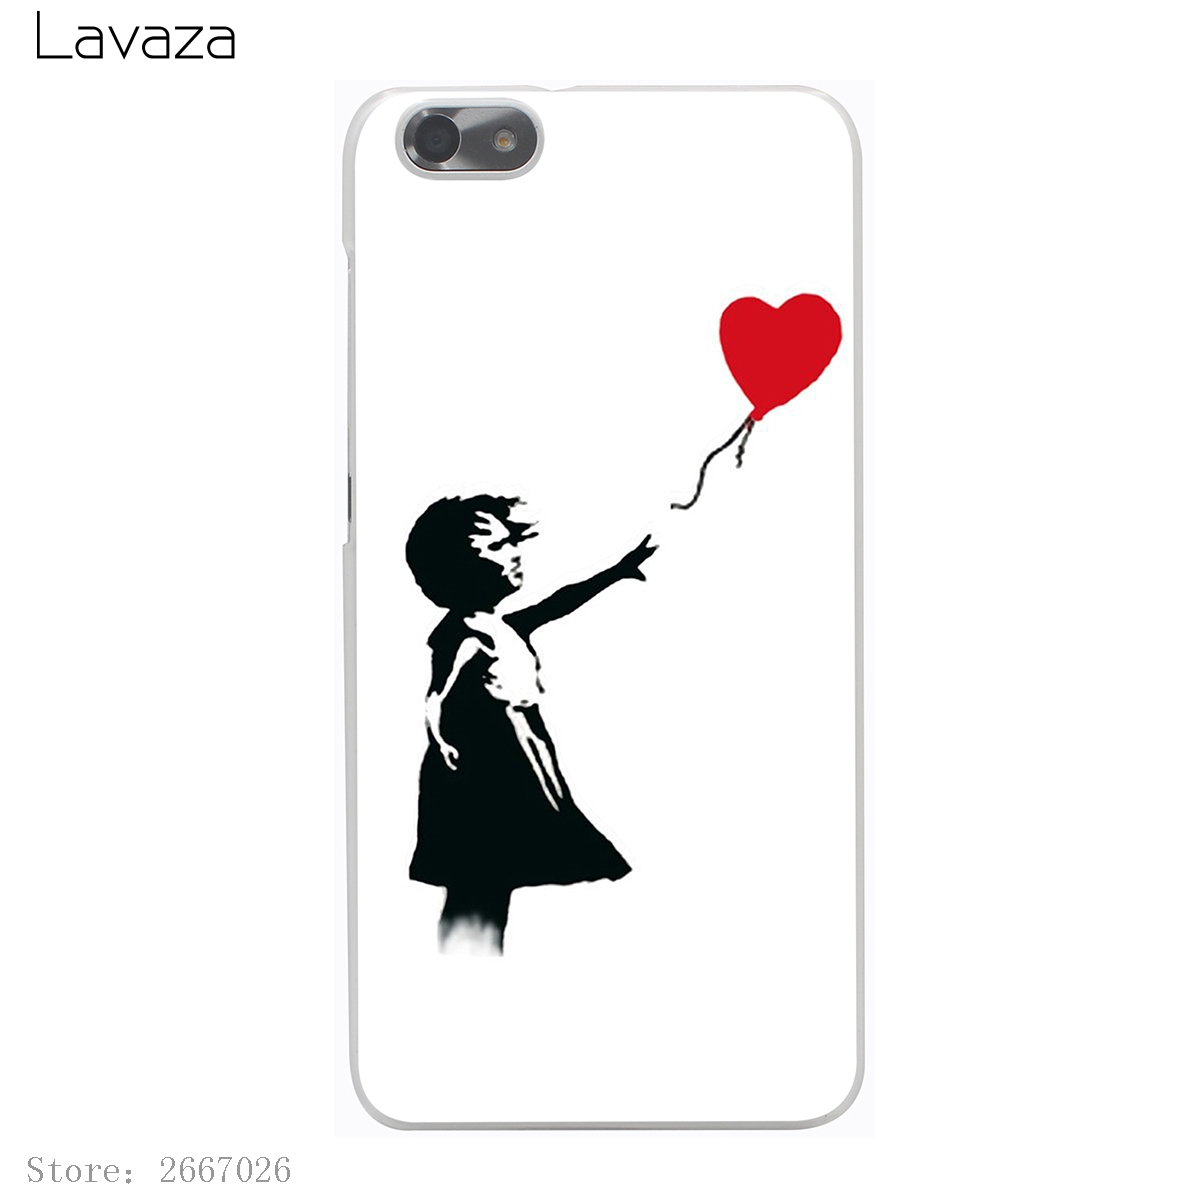 Us 2 25 lavaza street art banksy graffiti case for huawei honor mate 7a 7c 9 10 p8 p9 p10 p20 p smart lite pro y6 prime 2017 2018 in half wrapped